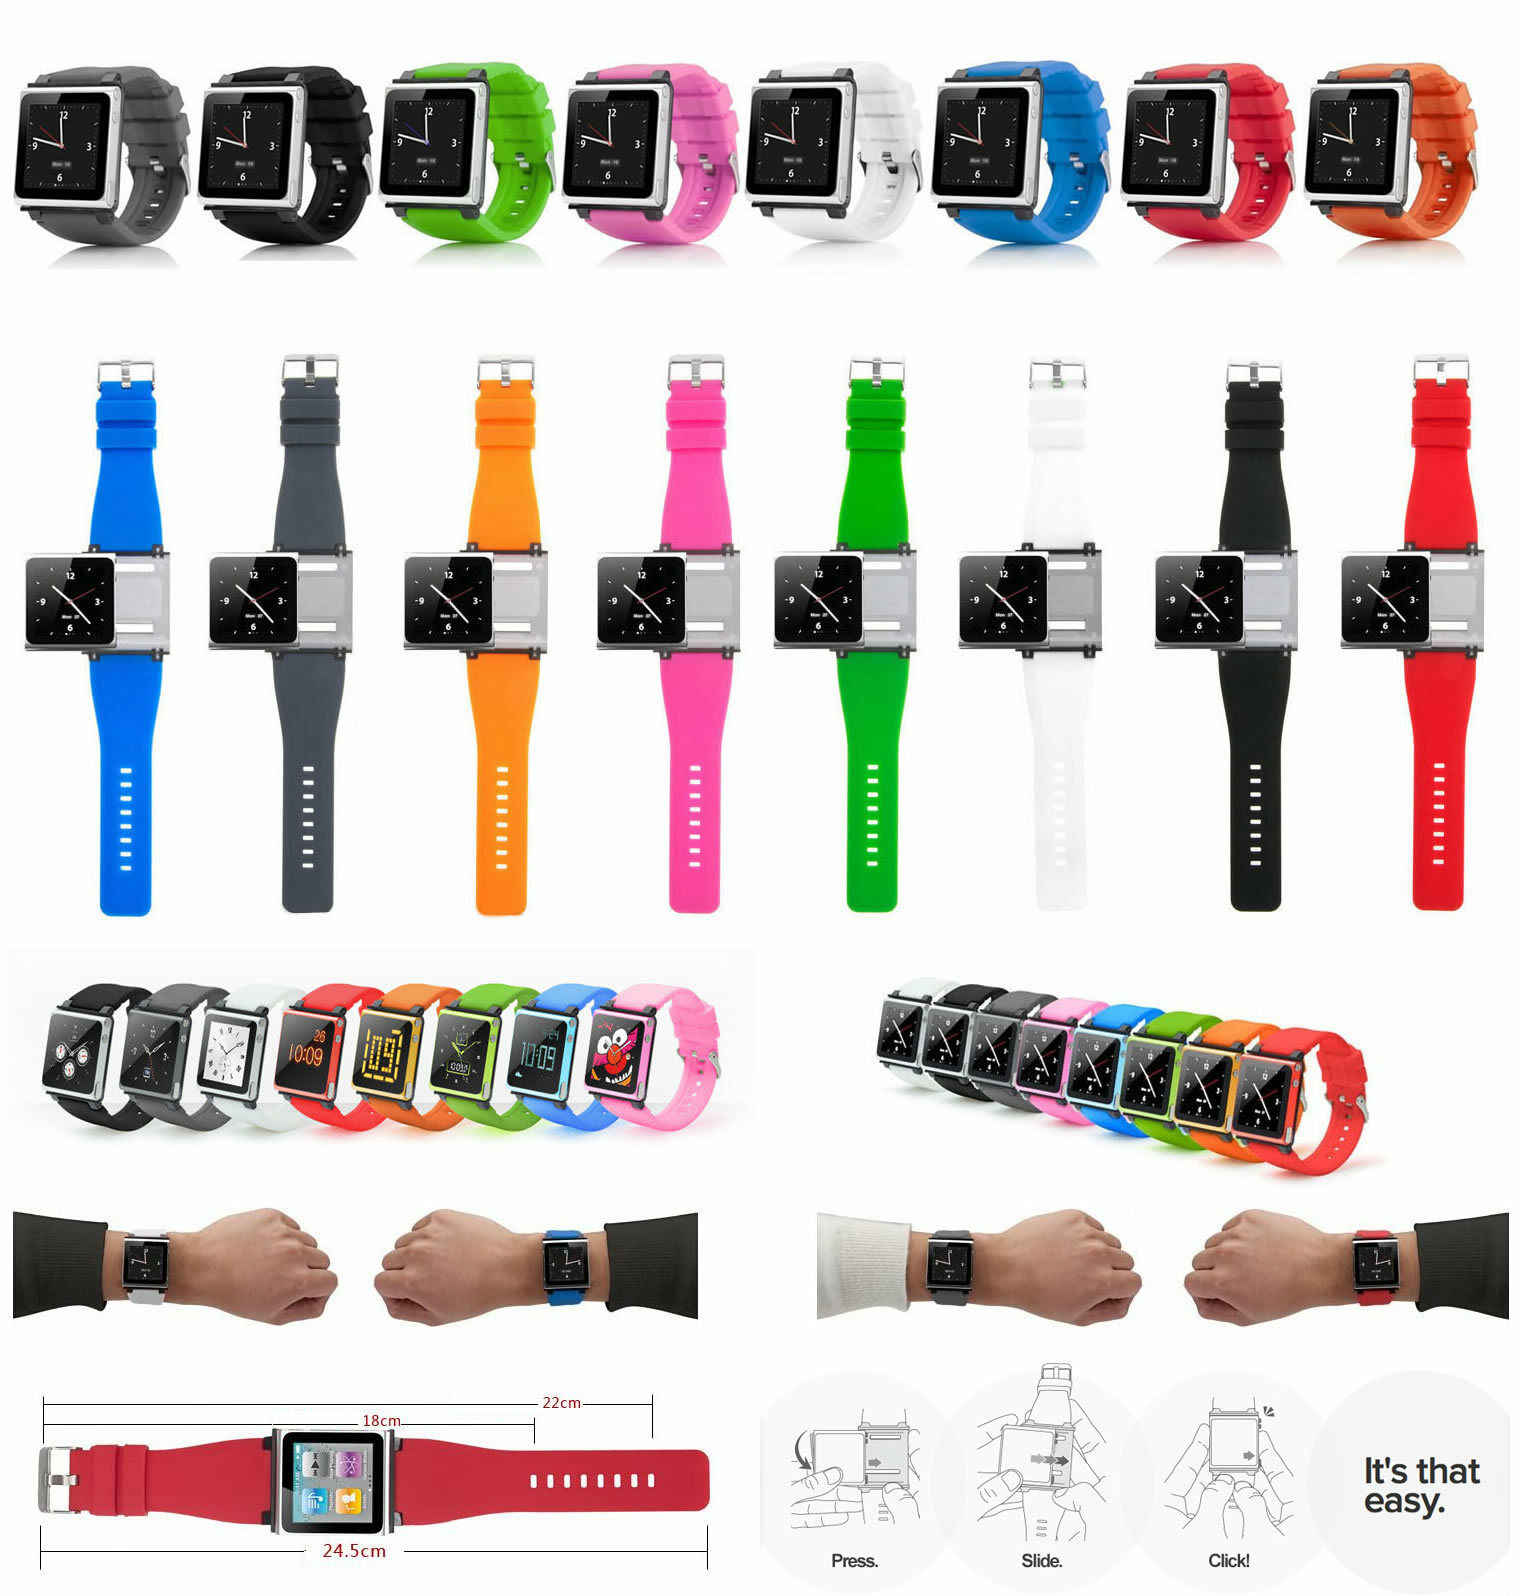 Multi-Touch Watch Band Kit Tali Jam untuk IPod Nano 6 6th 6G Silicone Watch Band Pergelangan Tangan tali